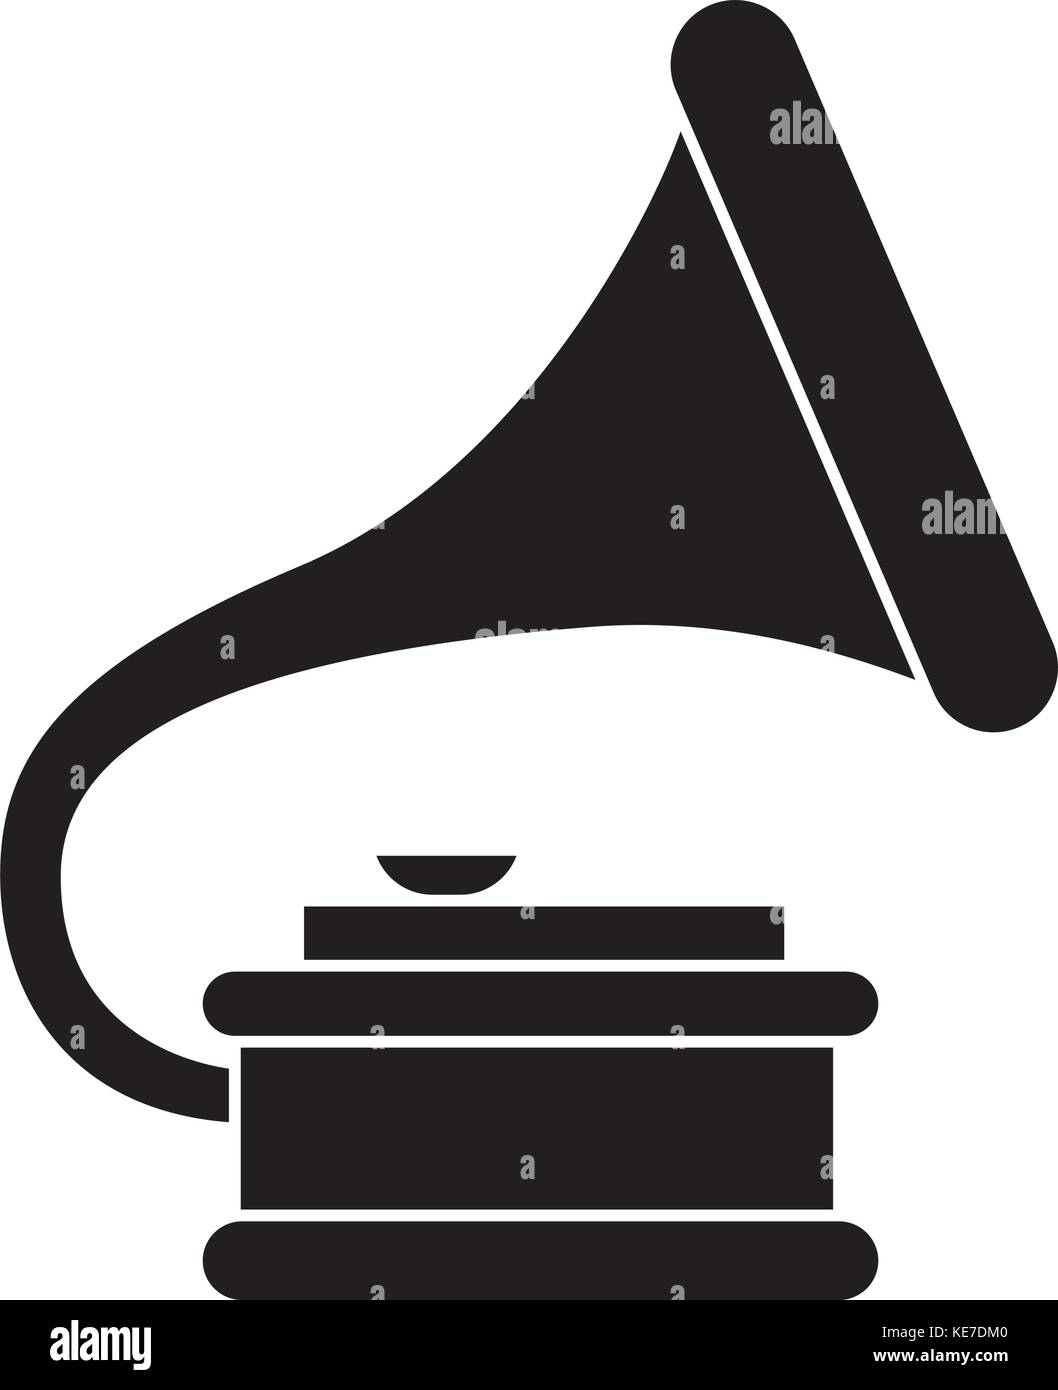 gramophone 2 icon, vector illustration, black sign on isolated background - Stock Vector